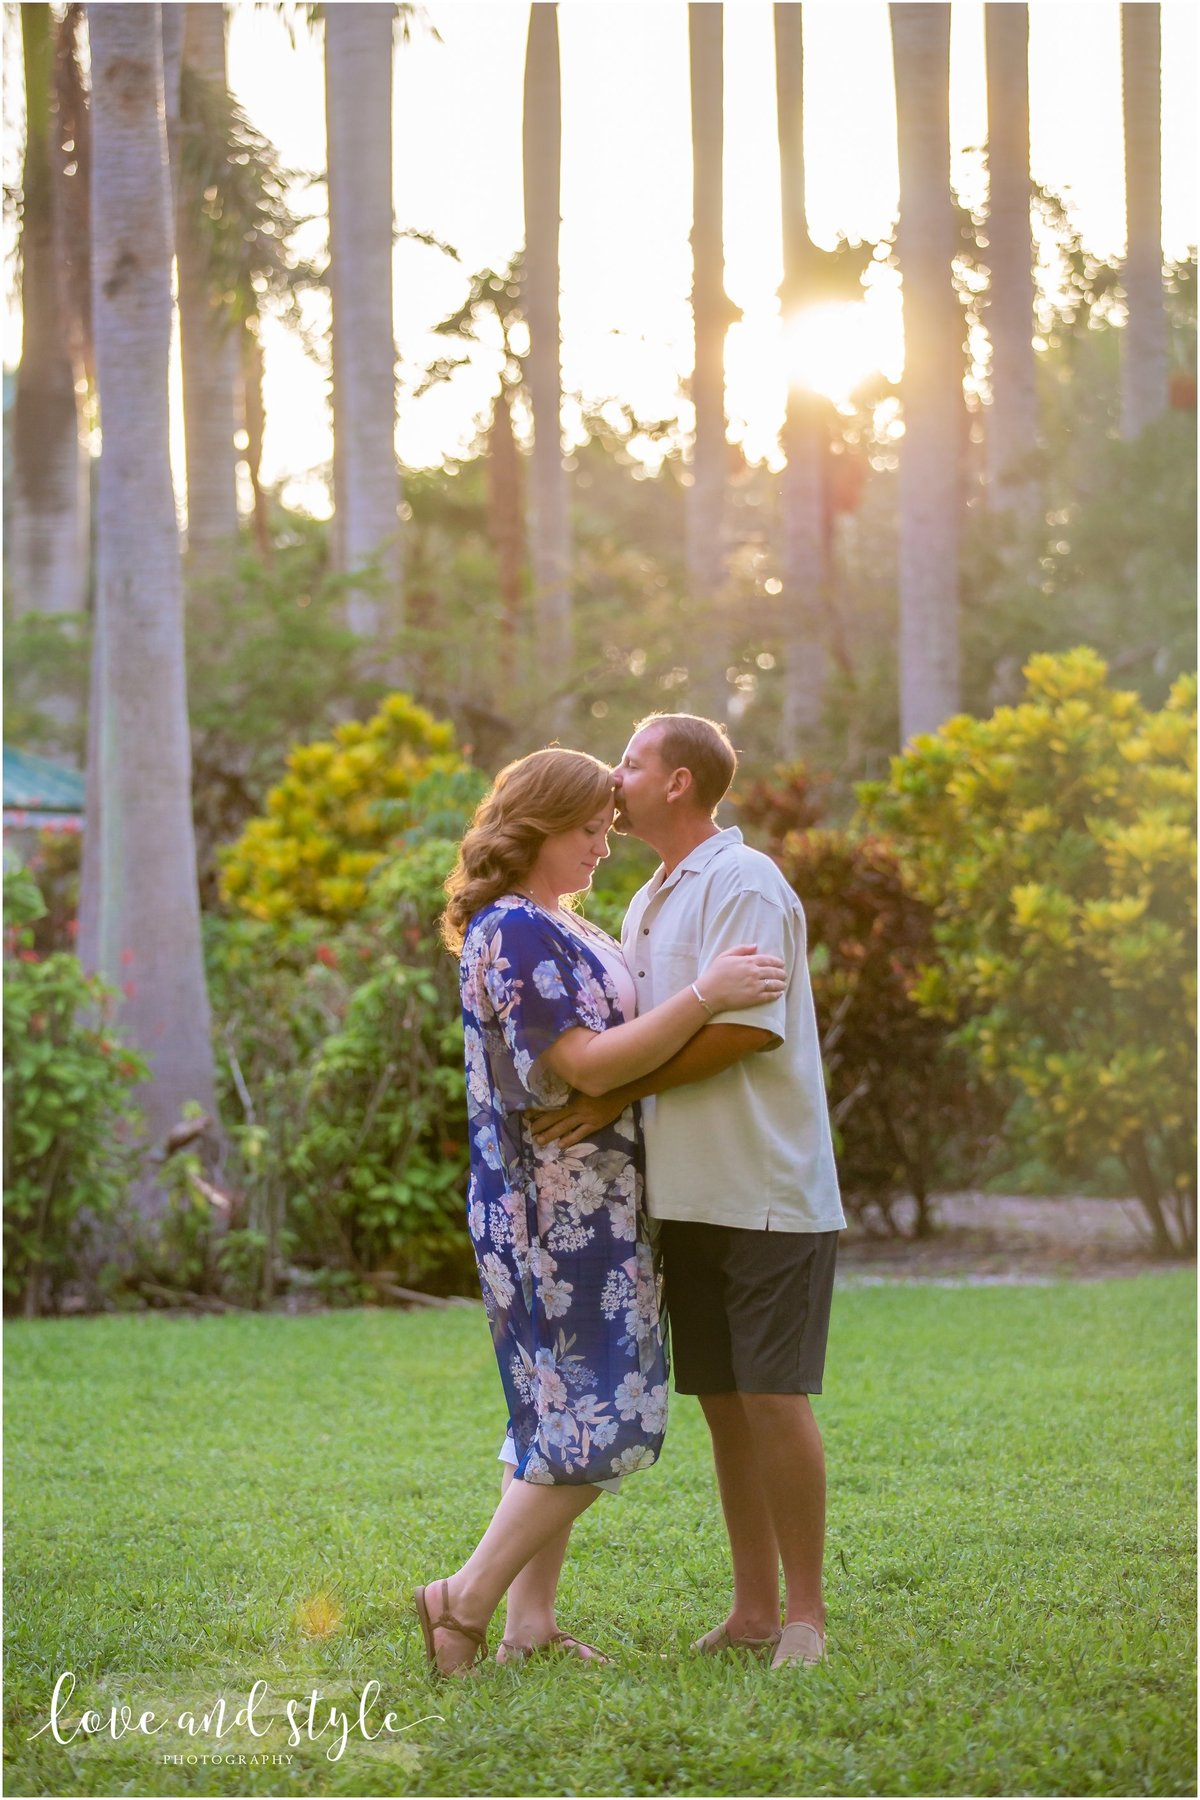 Engagement Photography at Palma Sola Botanical Garden during sunset on the lawn